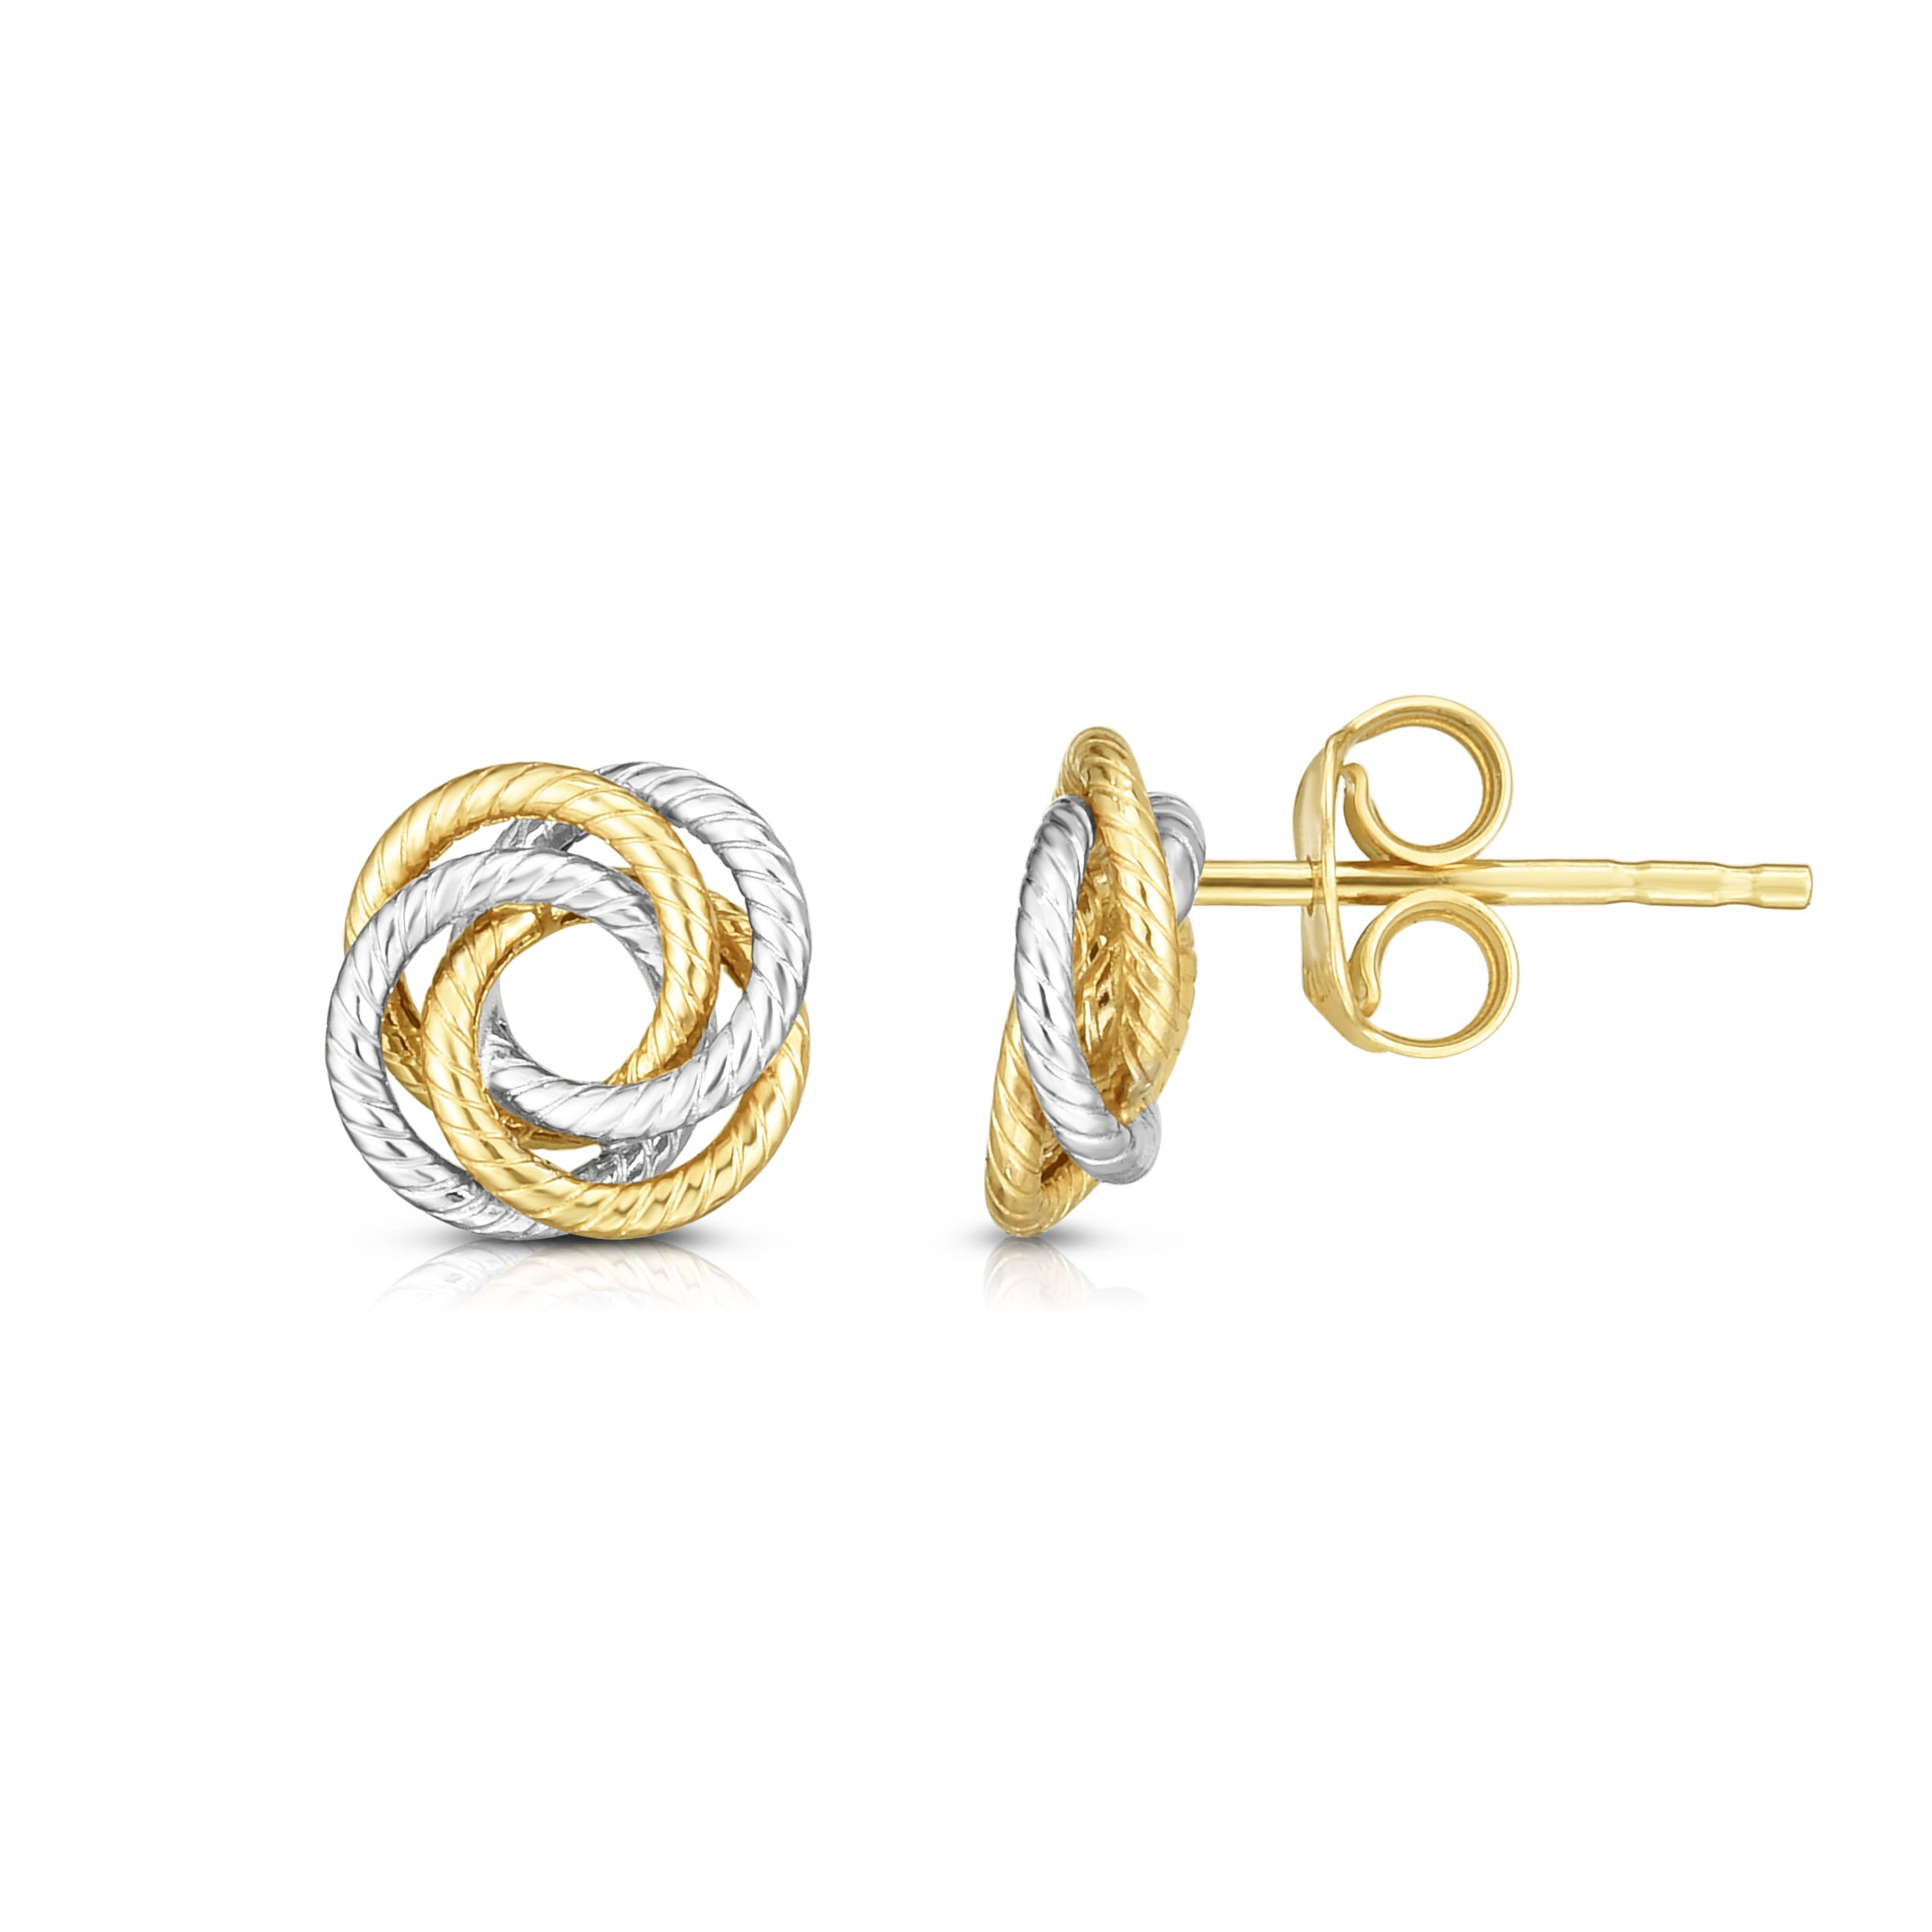 Knot Rope Stud Earrings in 14k Yellow & White Gold